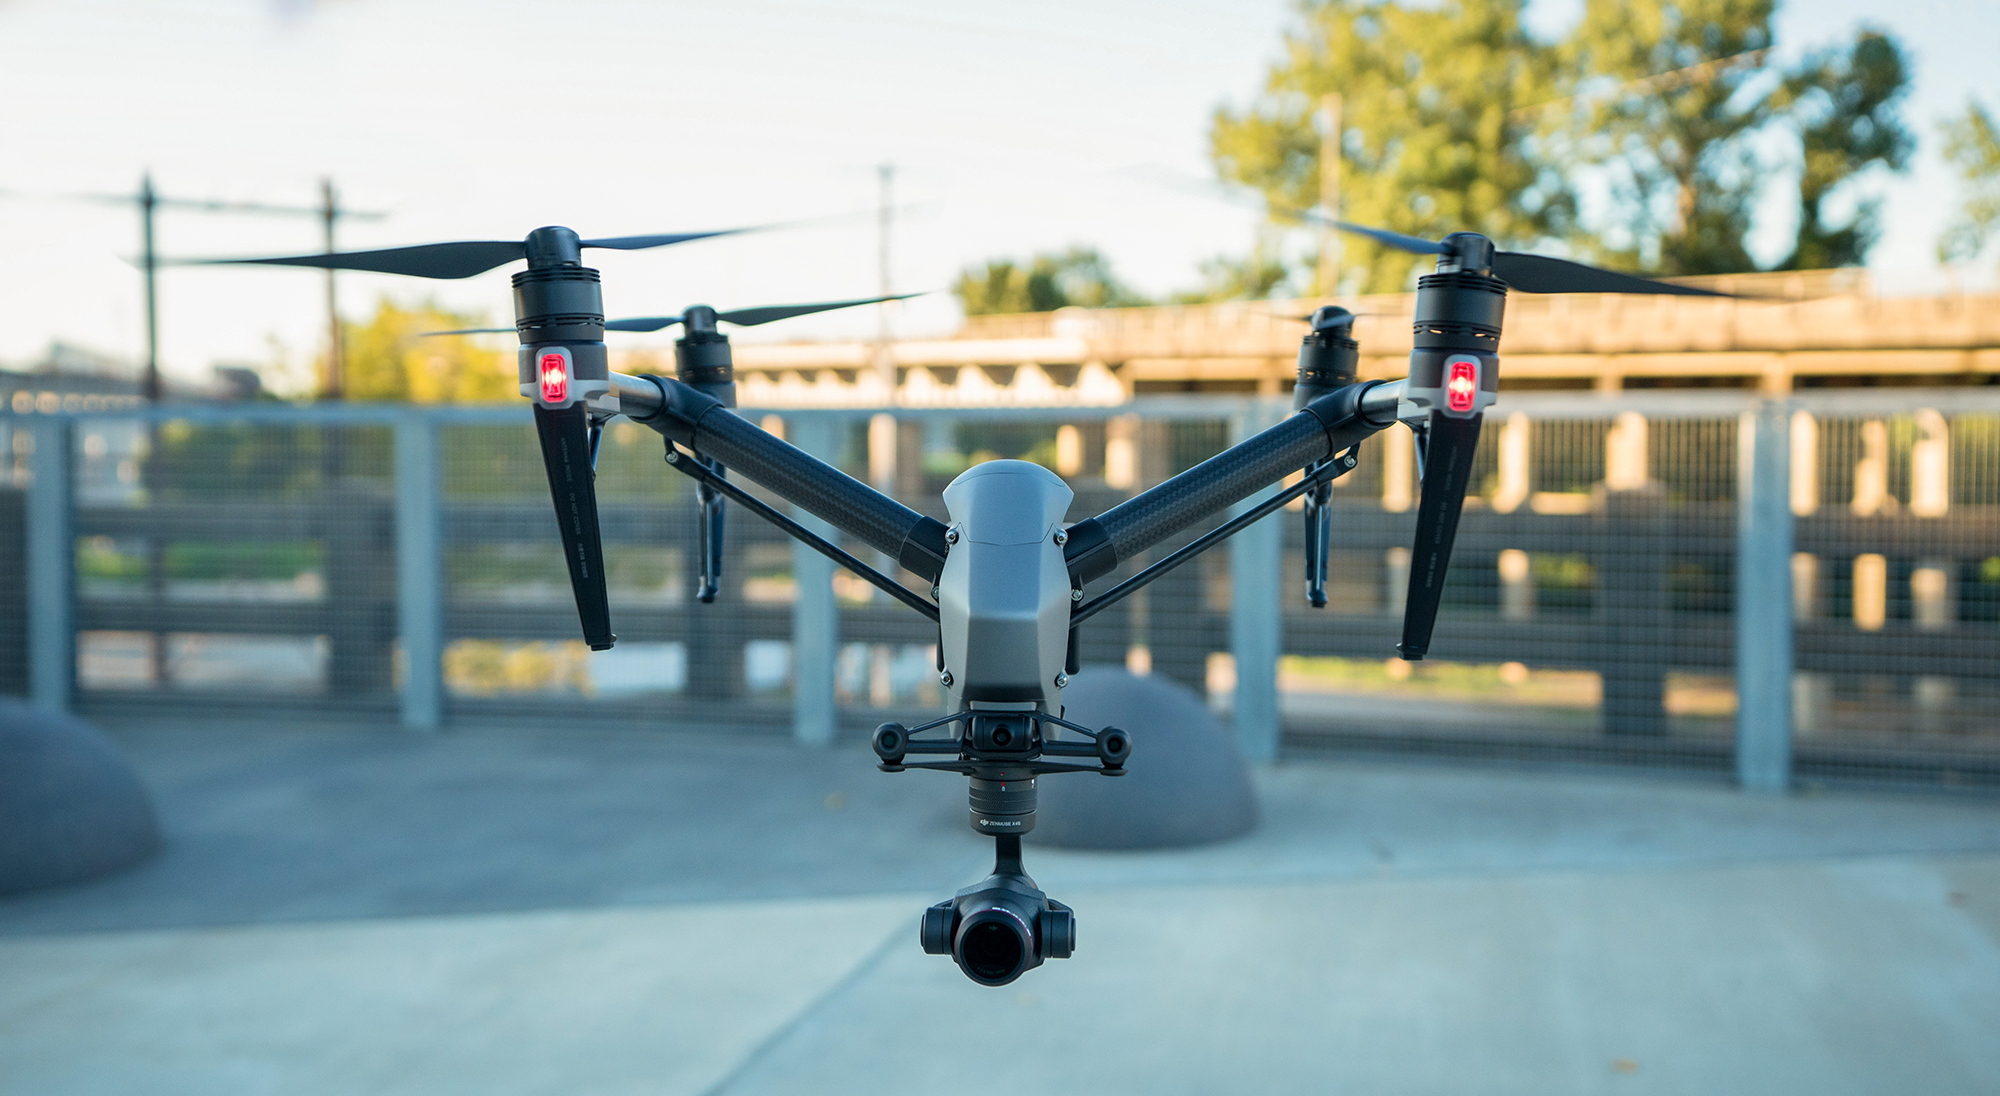 Lens Rentals Blog Dji Inspire 1 Pro Zenmuse X5 4k 3 Axis Professional 2 Available For Rental